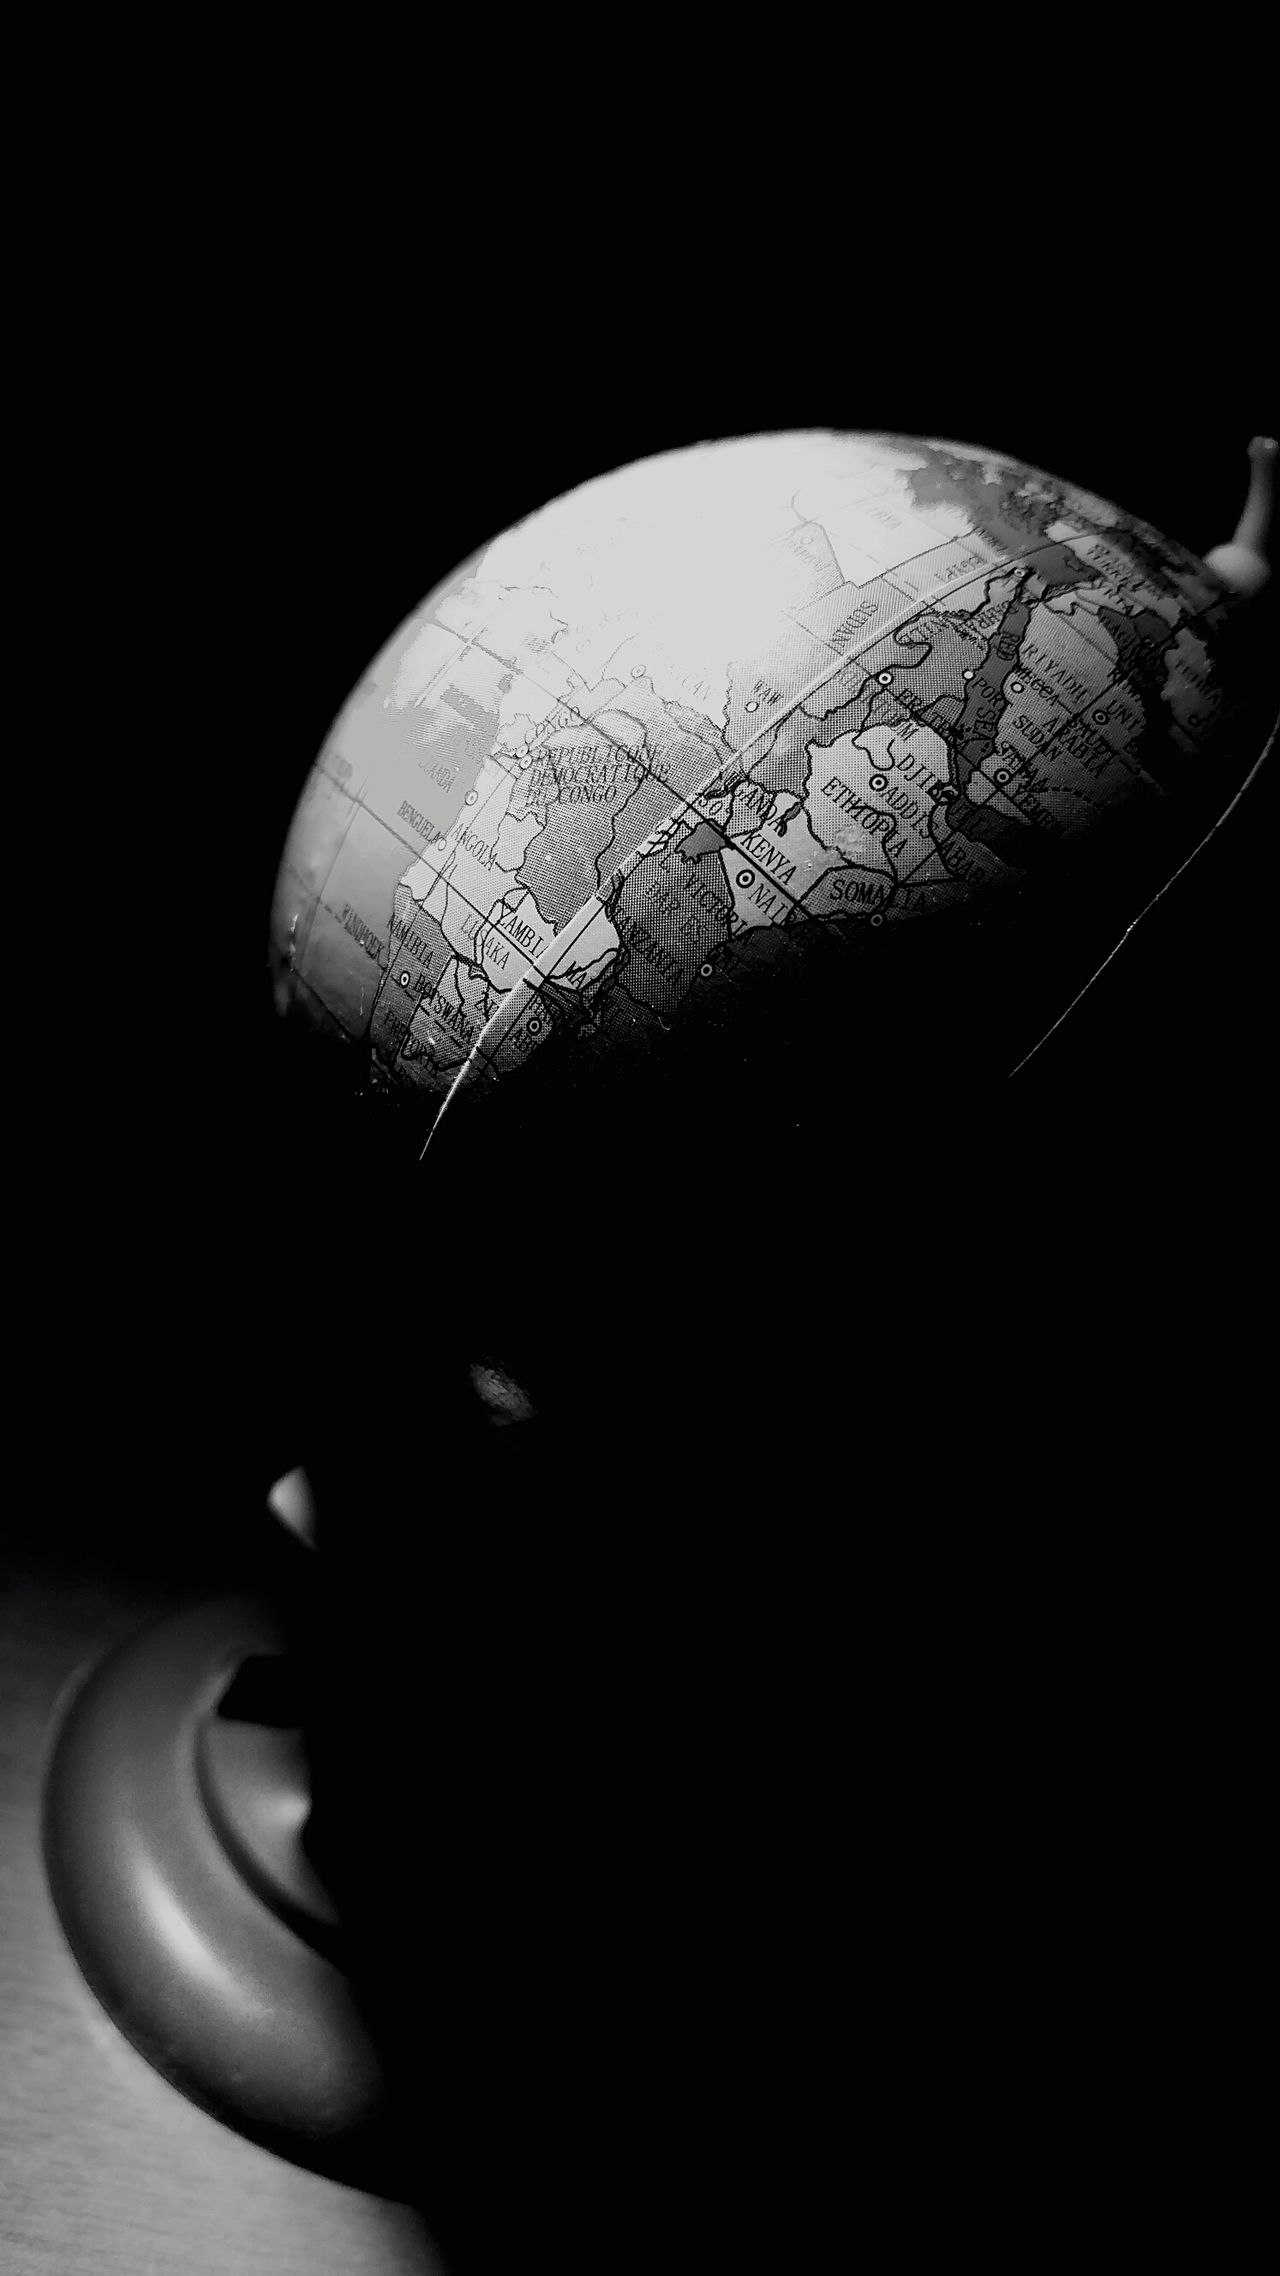 Close-up Black Background Indoors  Macro Beauty Macro Photography Globe Globe - Man Made Object Earth Map High Contrast Contrast Artificial Light Artifical Light Blackandwhite Black And White Black & White Blackandwhite Photography Black And White Photography Black Background Black&white Black And White Collection